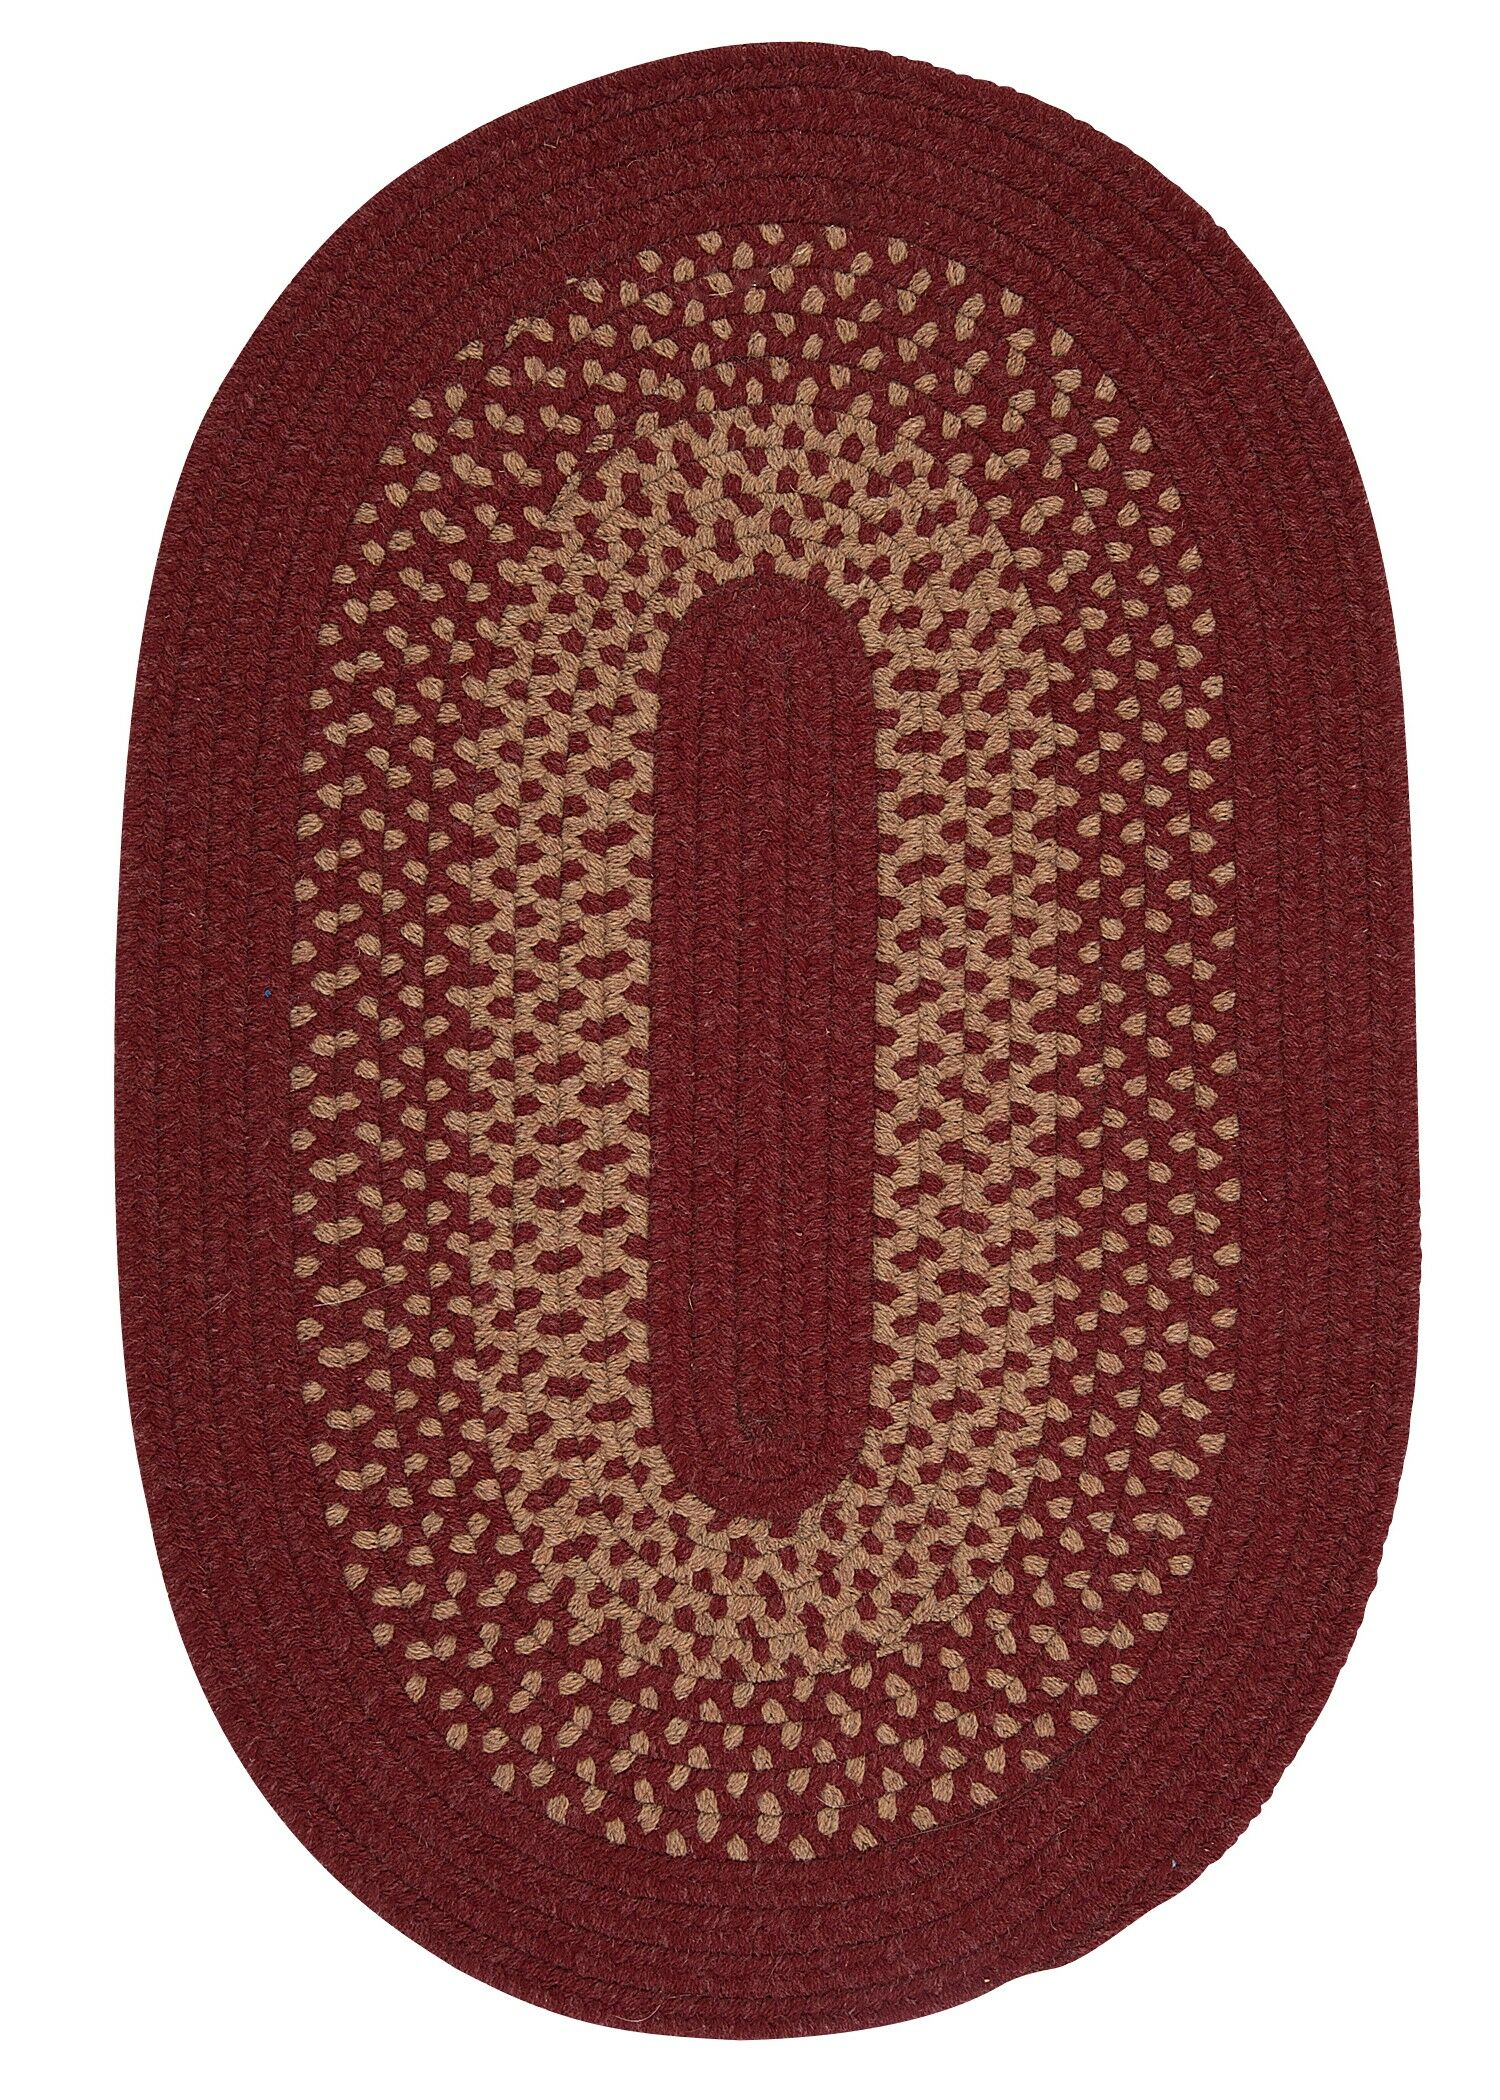 Lionel Holly Berry Area Rug Rug Size: Oval 3' x 5'